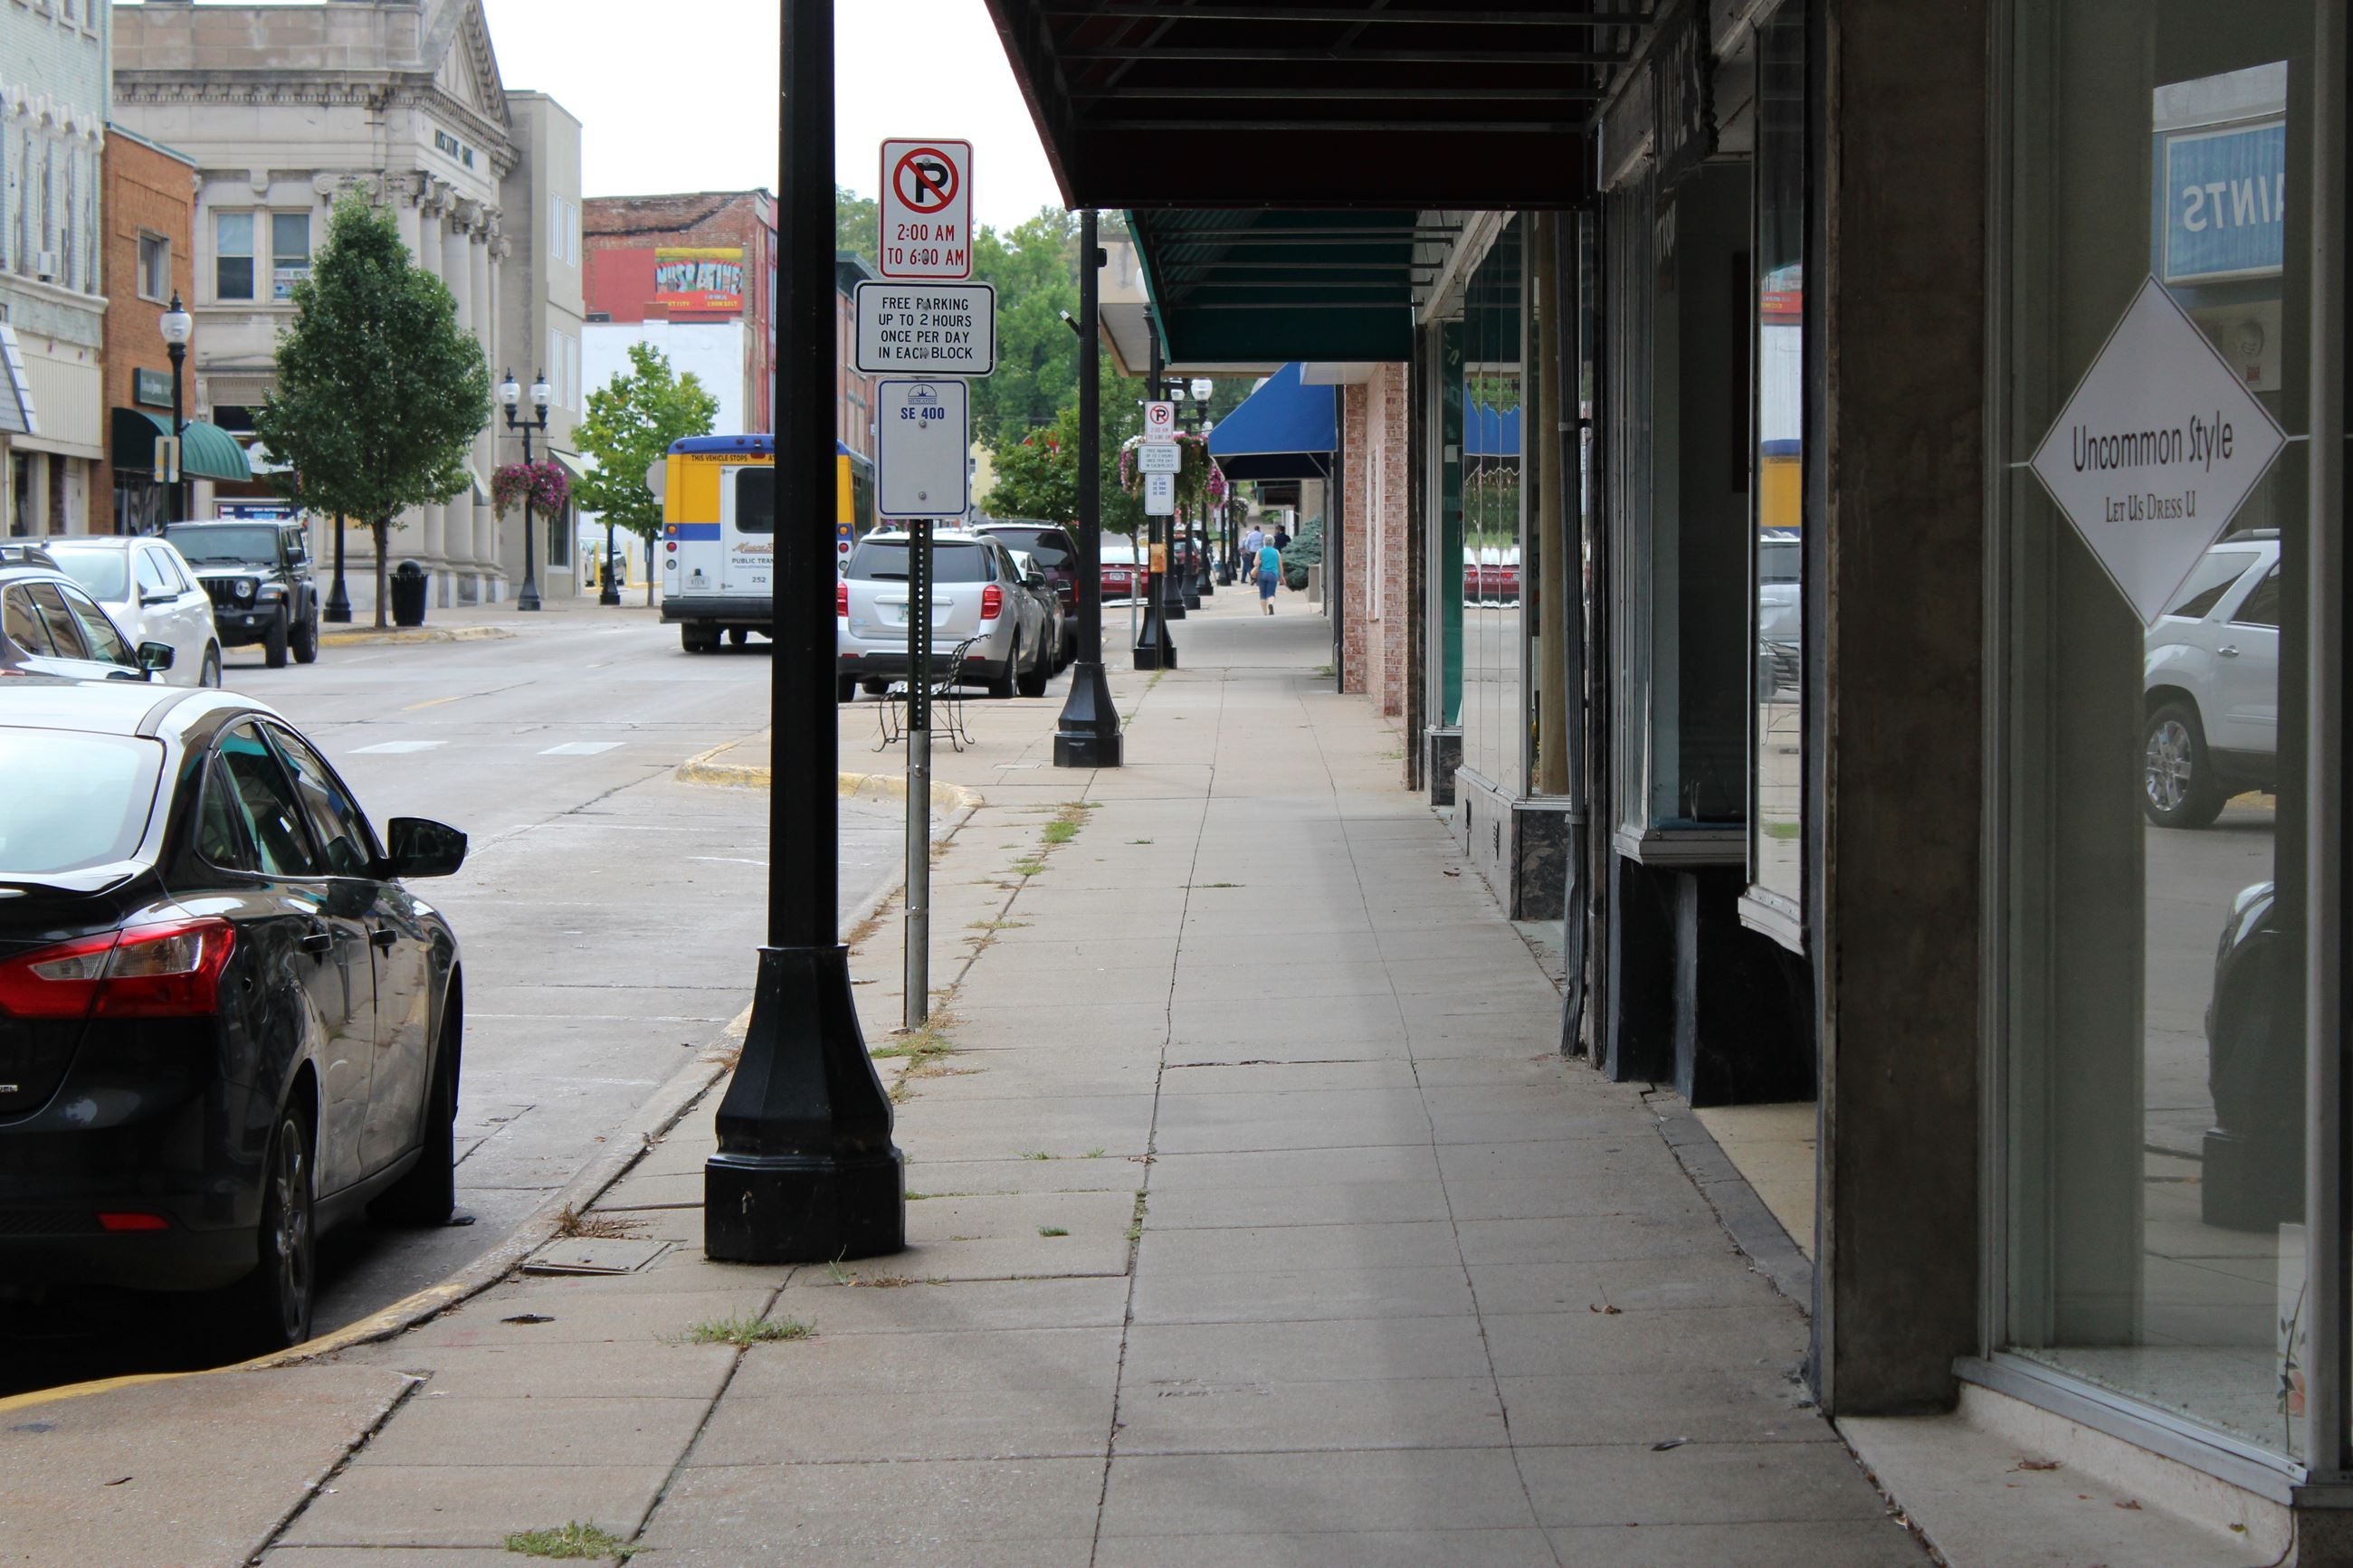 091919 Second Street Sidewalk 001 (JPG)